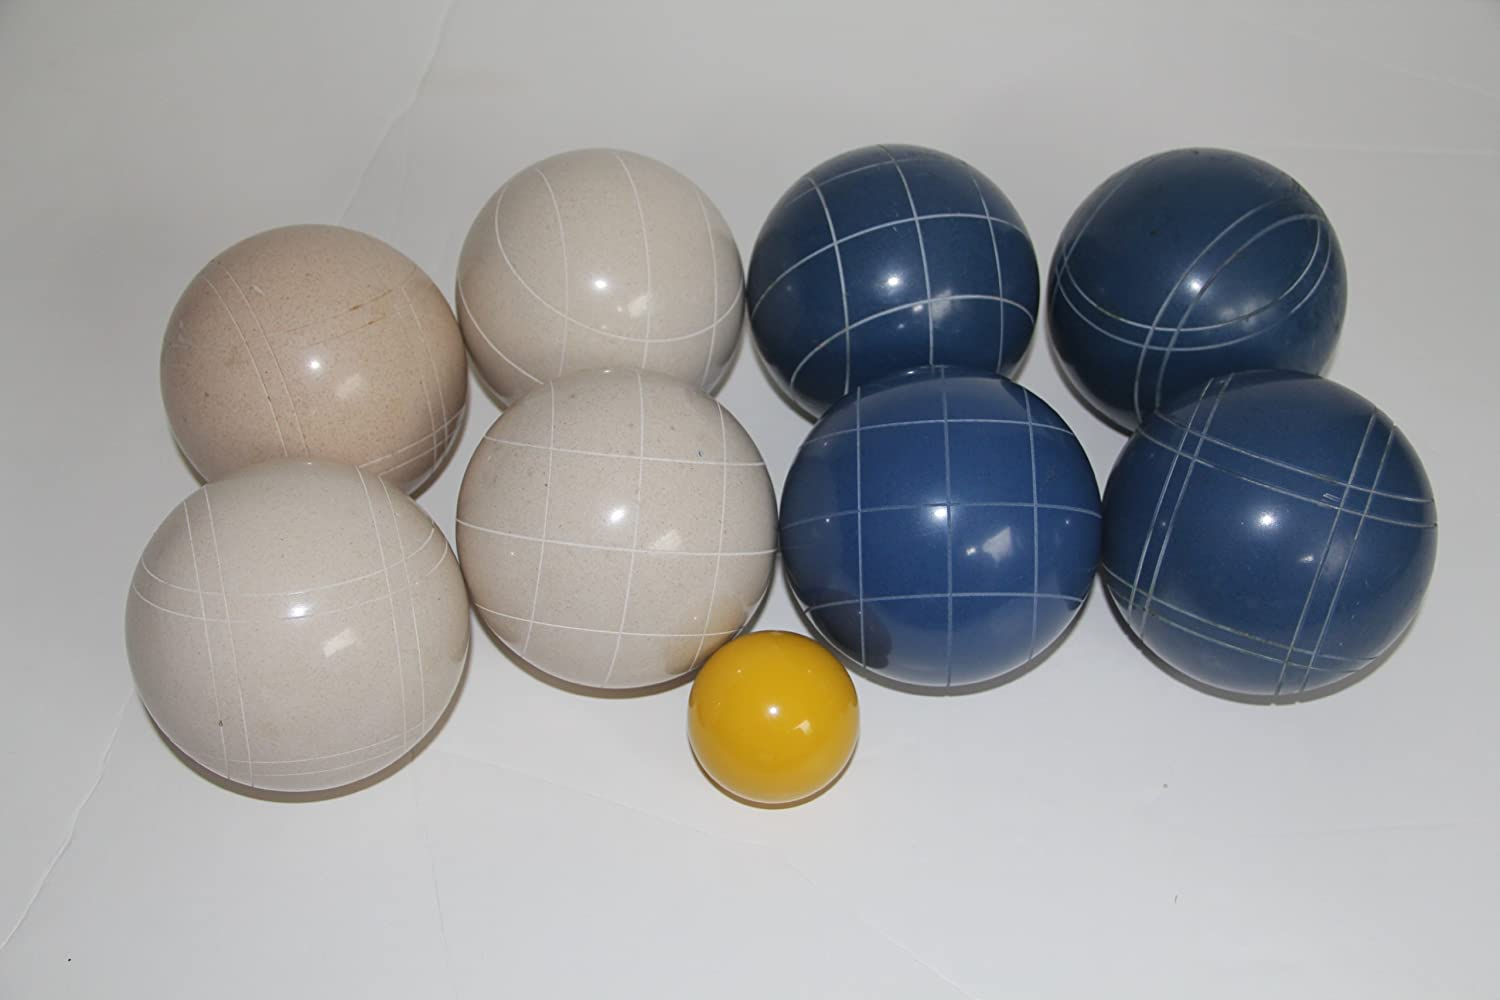 Premium Quality EPCO Tournament Bocce Set – 110mm Blue and White Bocce Balls … jetzt bestellen